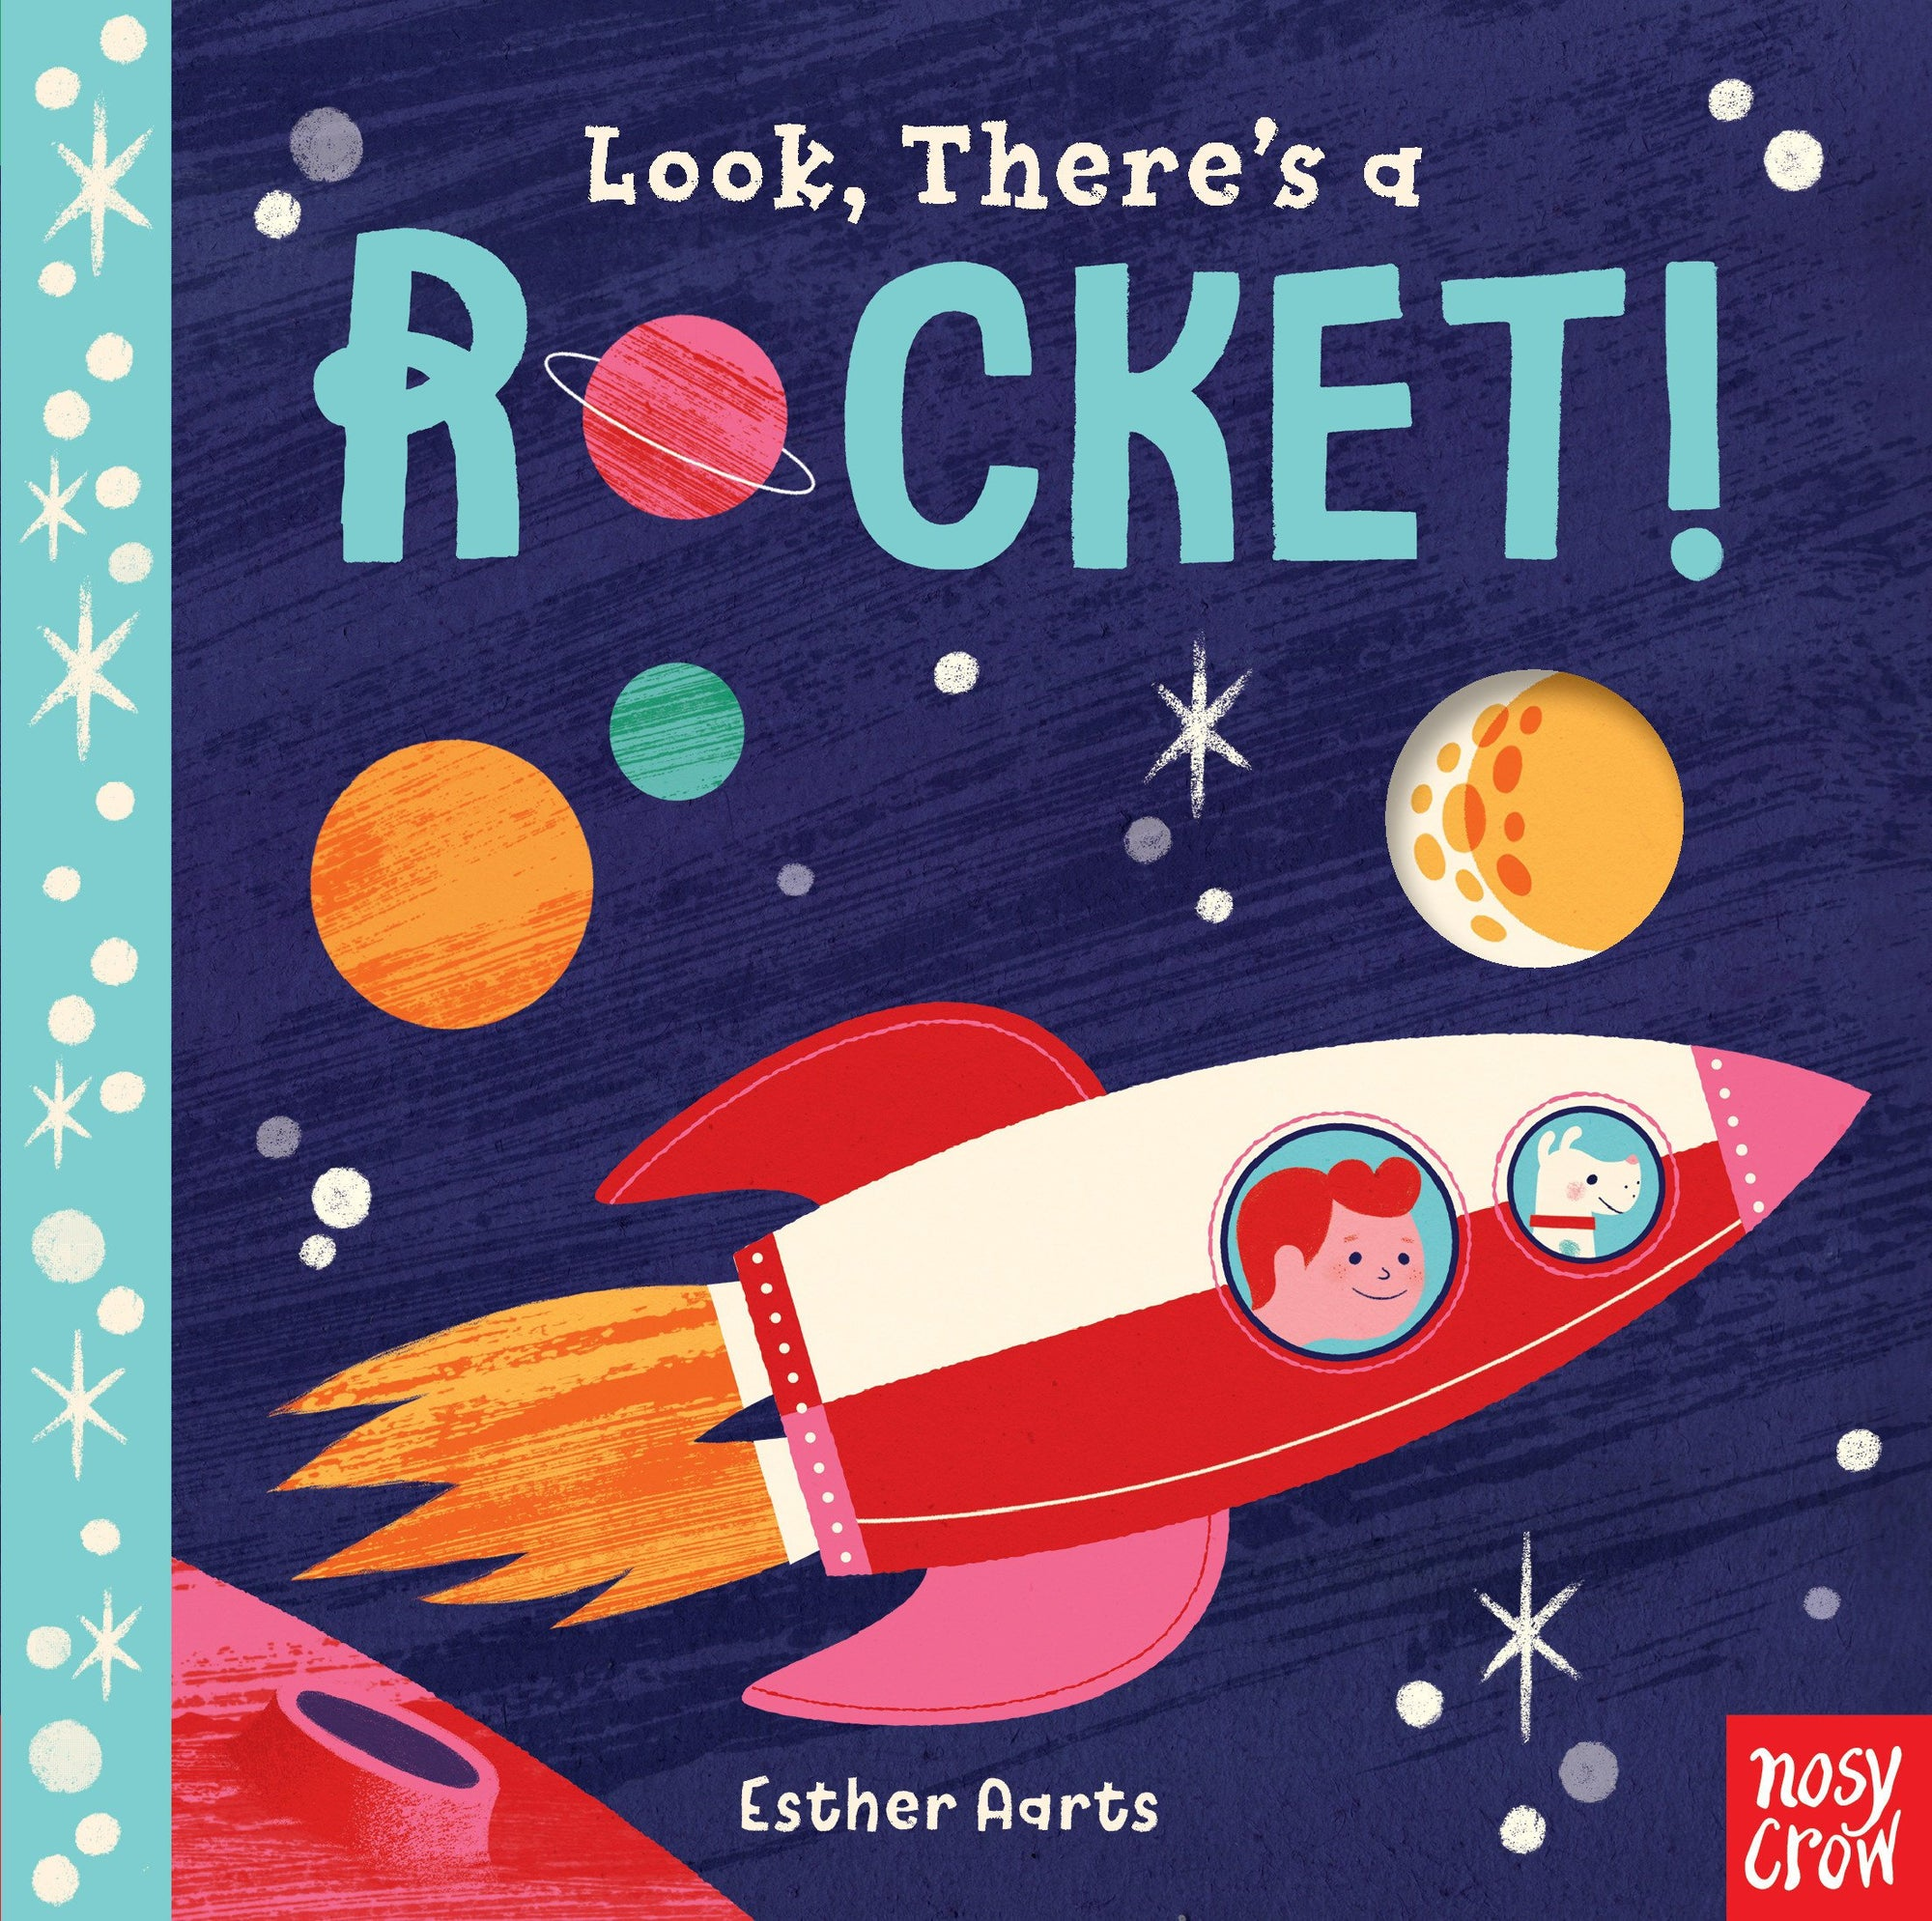 Book - Look, There's a Rocket!